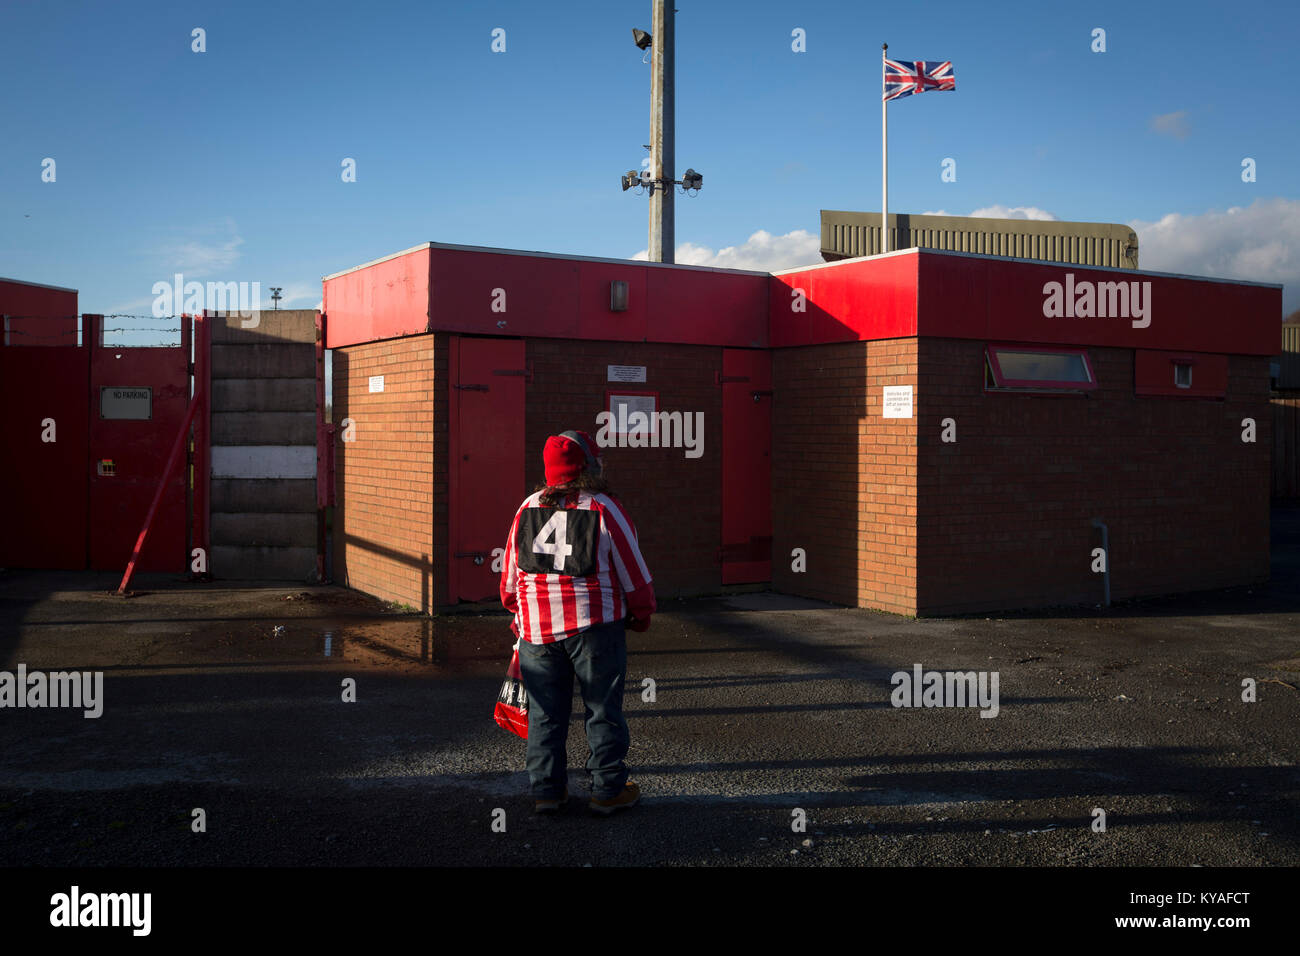 Enjoyable A Solitary Home Supporter Waiting Outside A Turnstile Download Free Architecture Designs Scobabritishbridgeorg